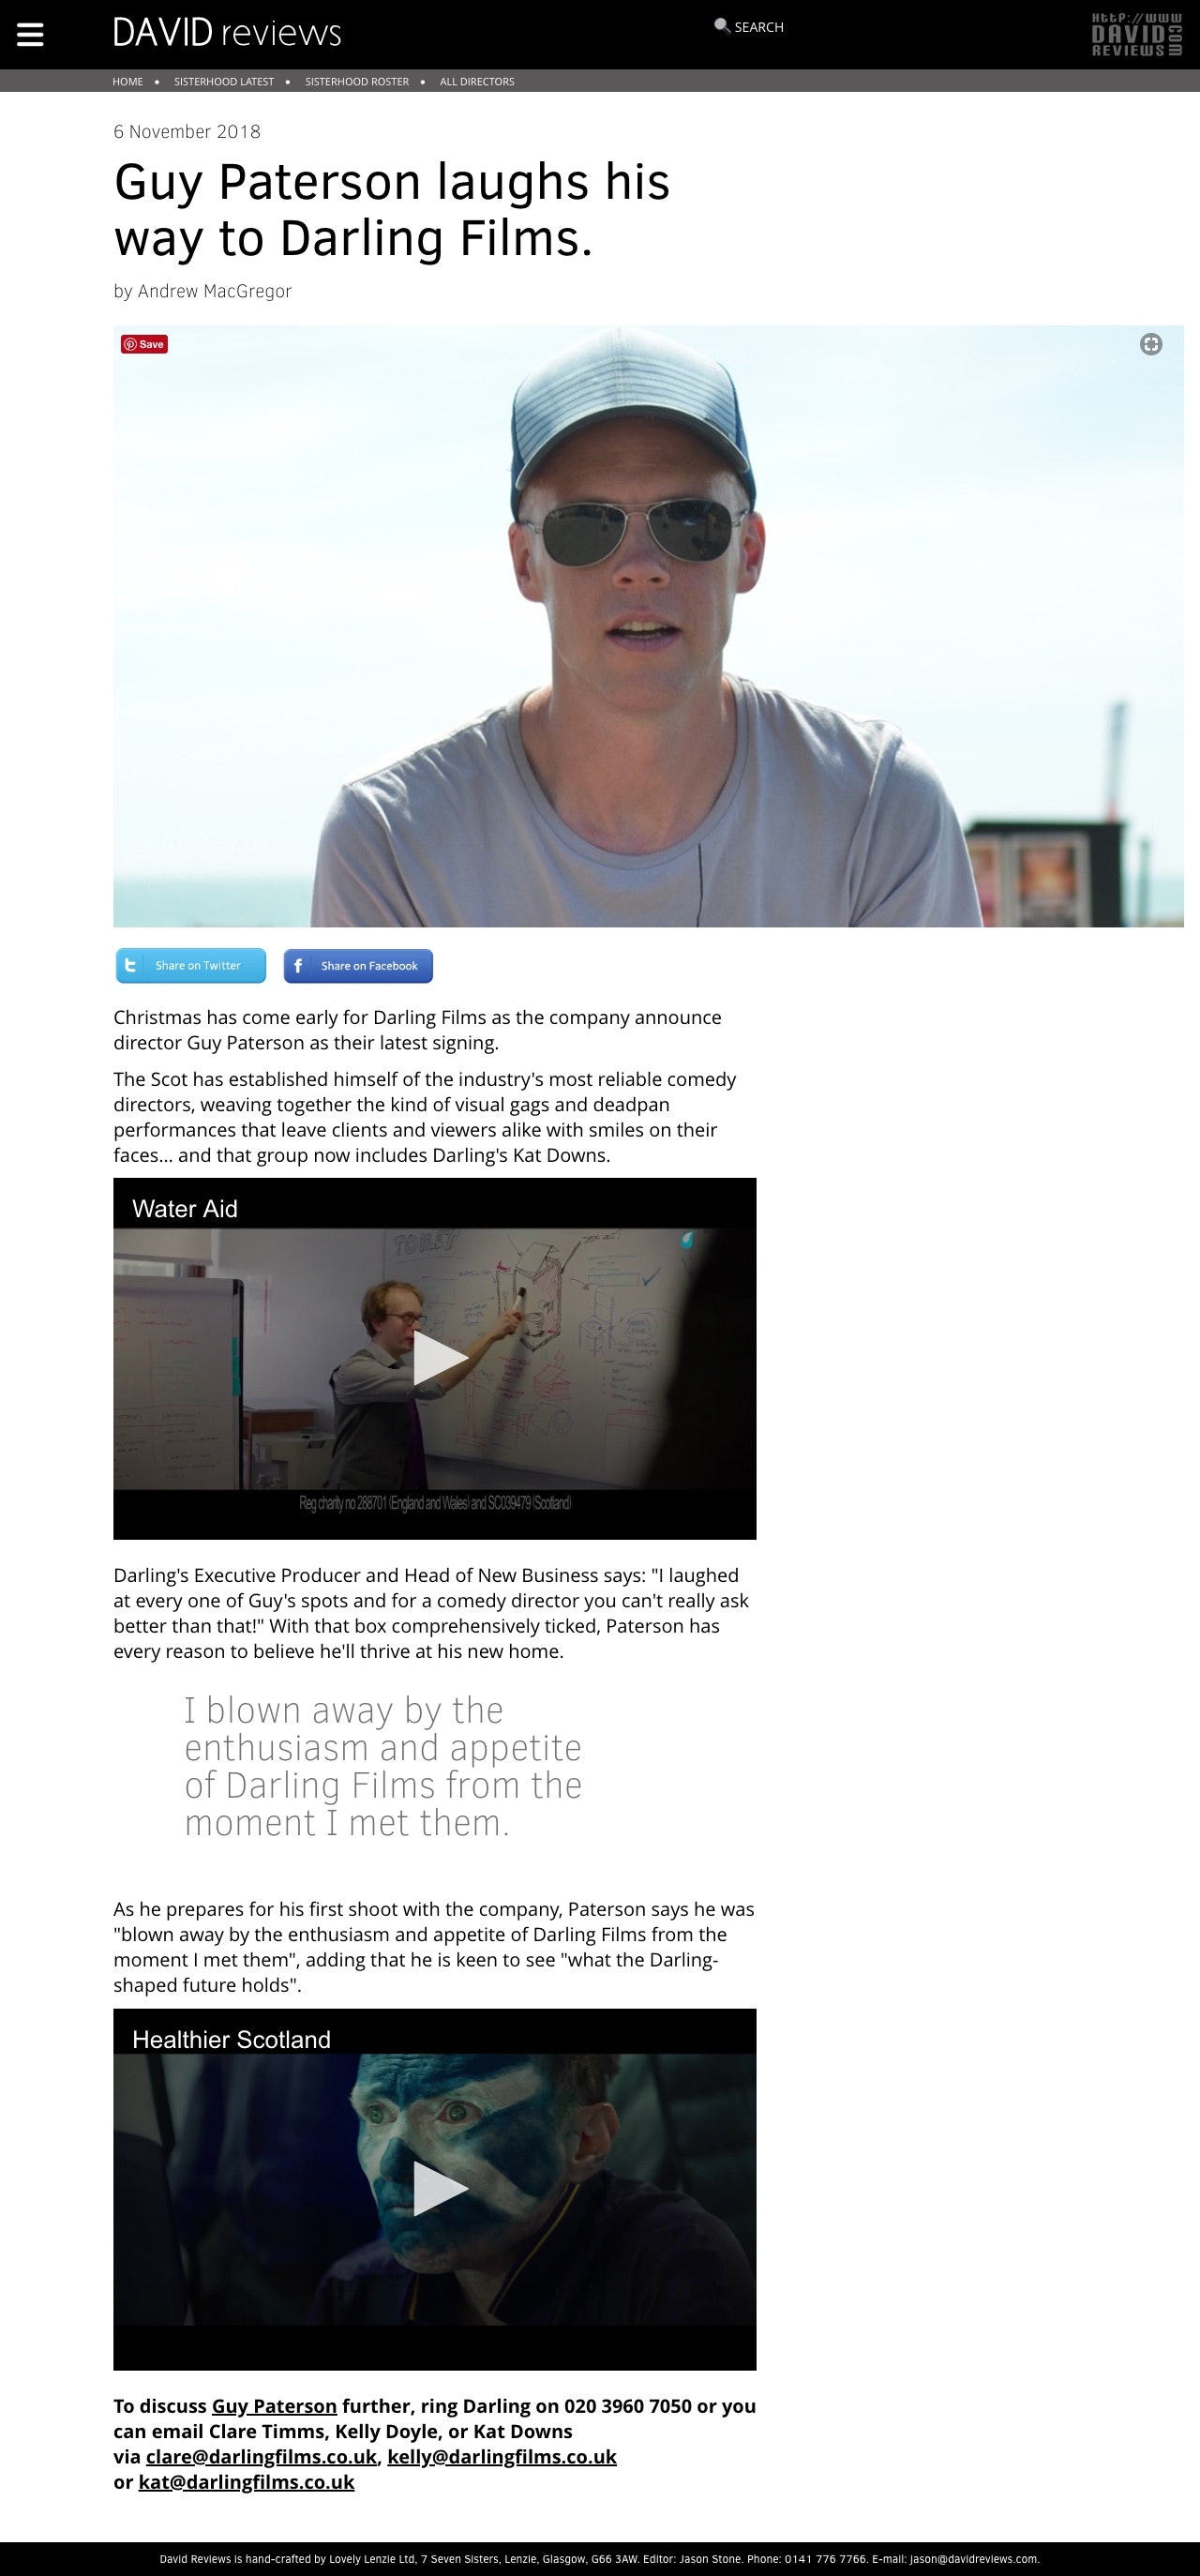 Guy Paterson laughs his way to Darling Films - Darling